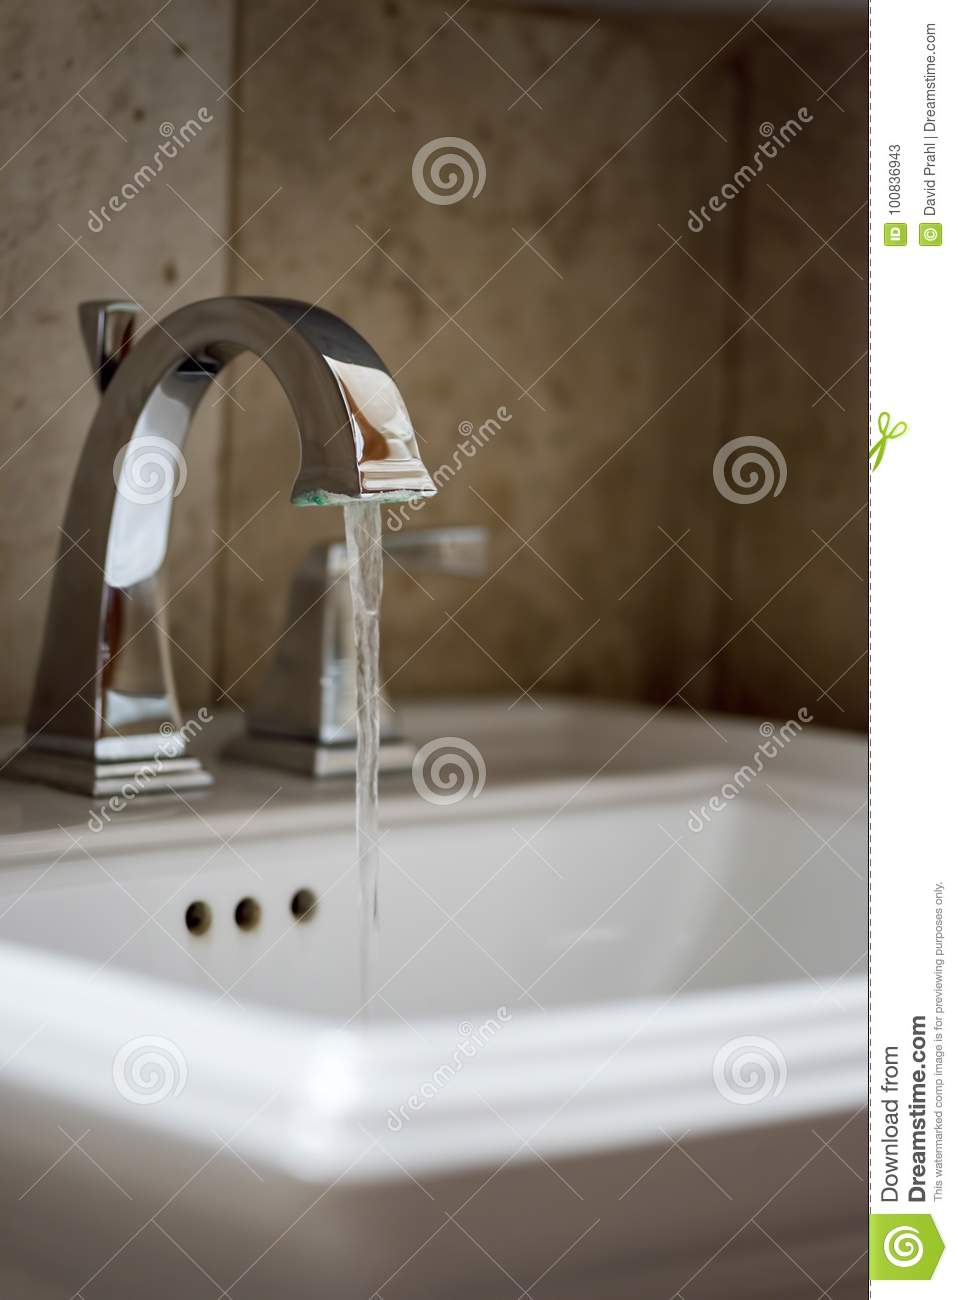 Water Running At Bathroom Faucet Stock Image - Image of resources ...